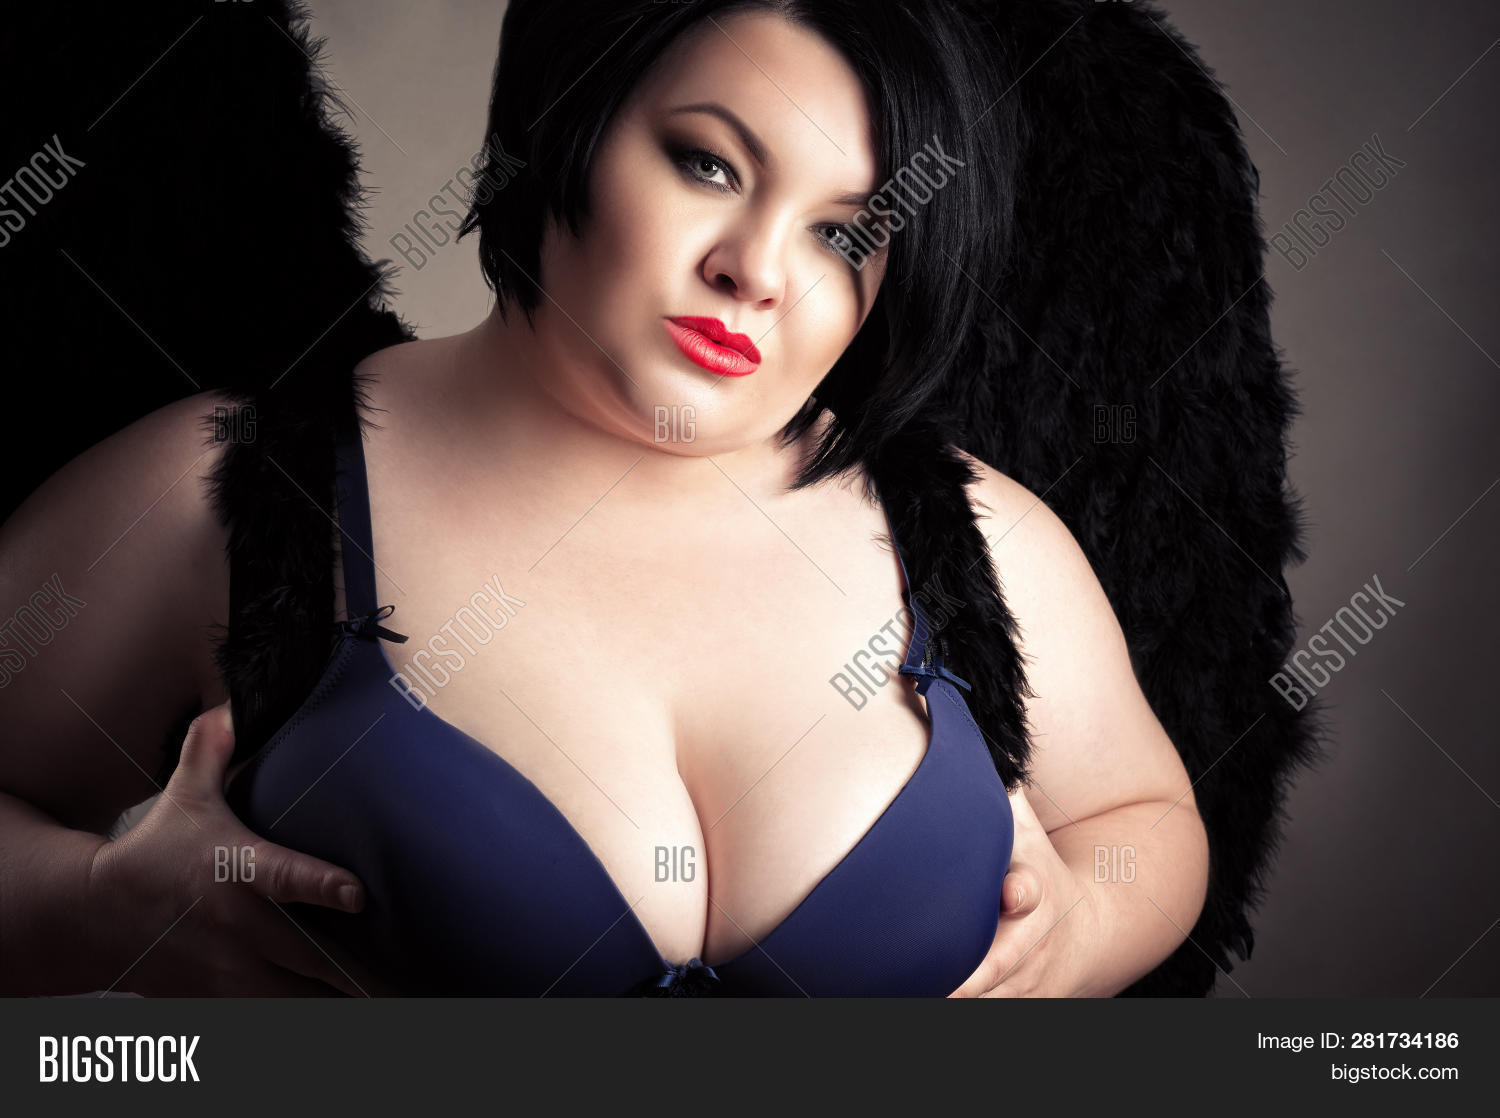 Free Big Fat Woman Pictures